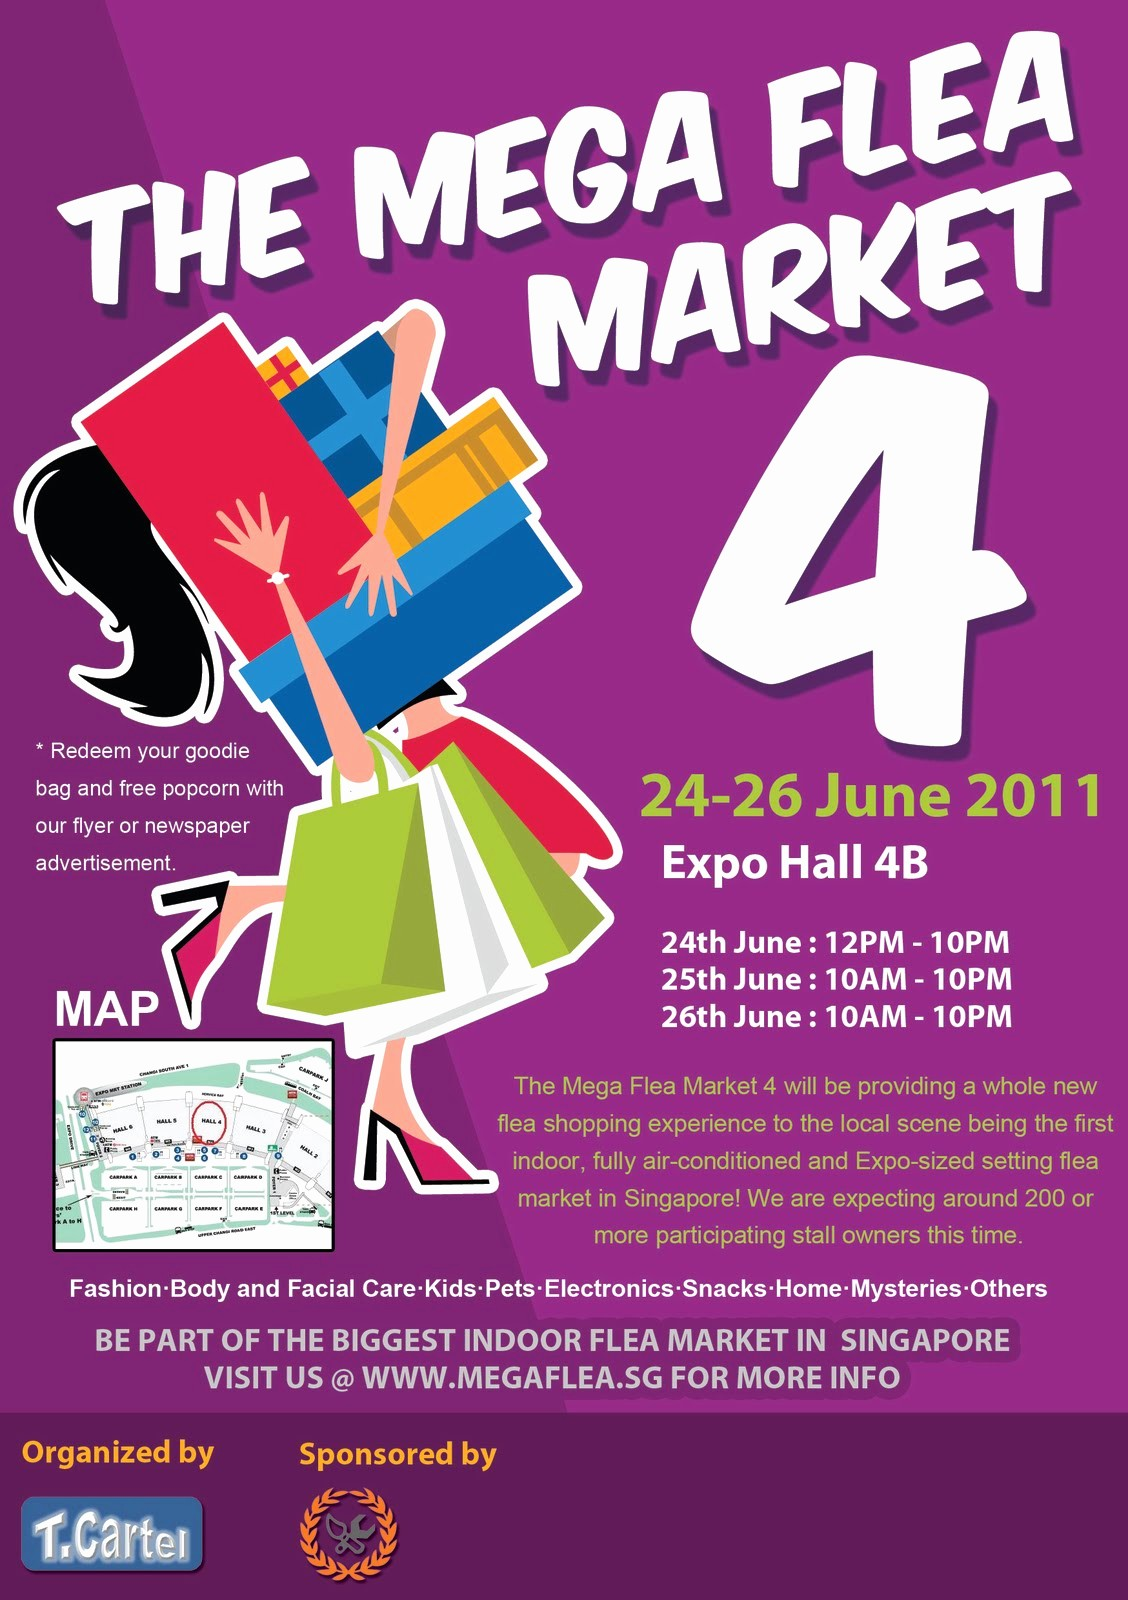 Flea Market Flyer Template Free Fresh Intimo Closet Blog Mega Flea Market 4